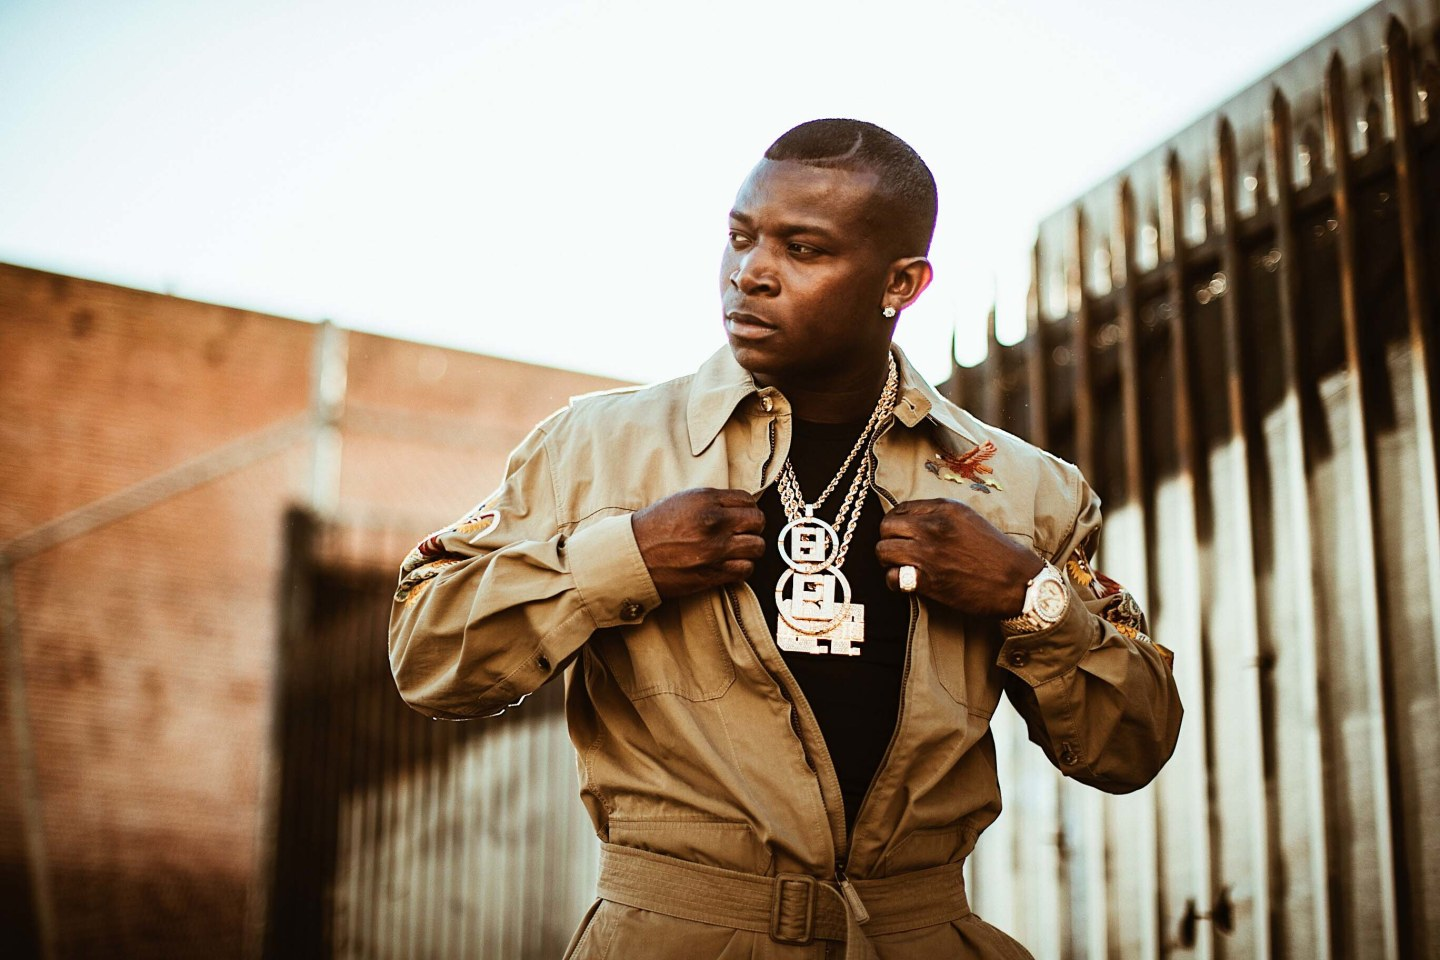 O.T. Genasis went viral, and then he did it again